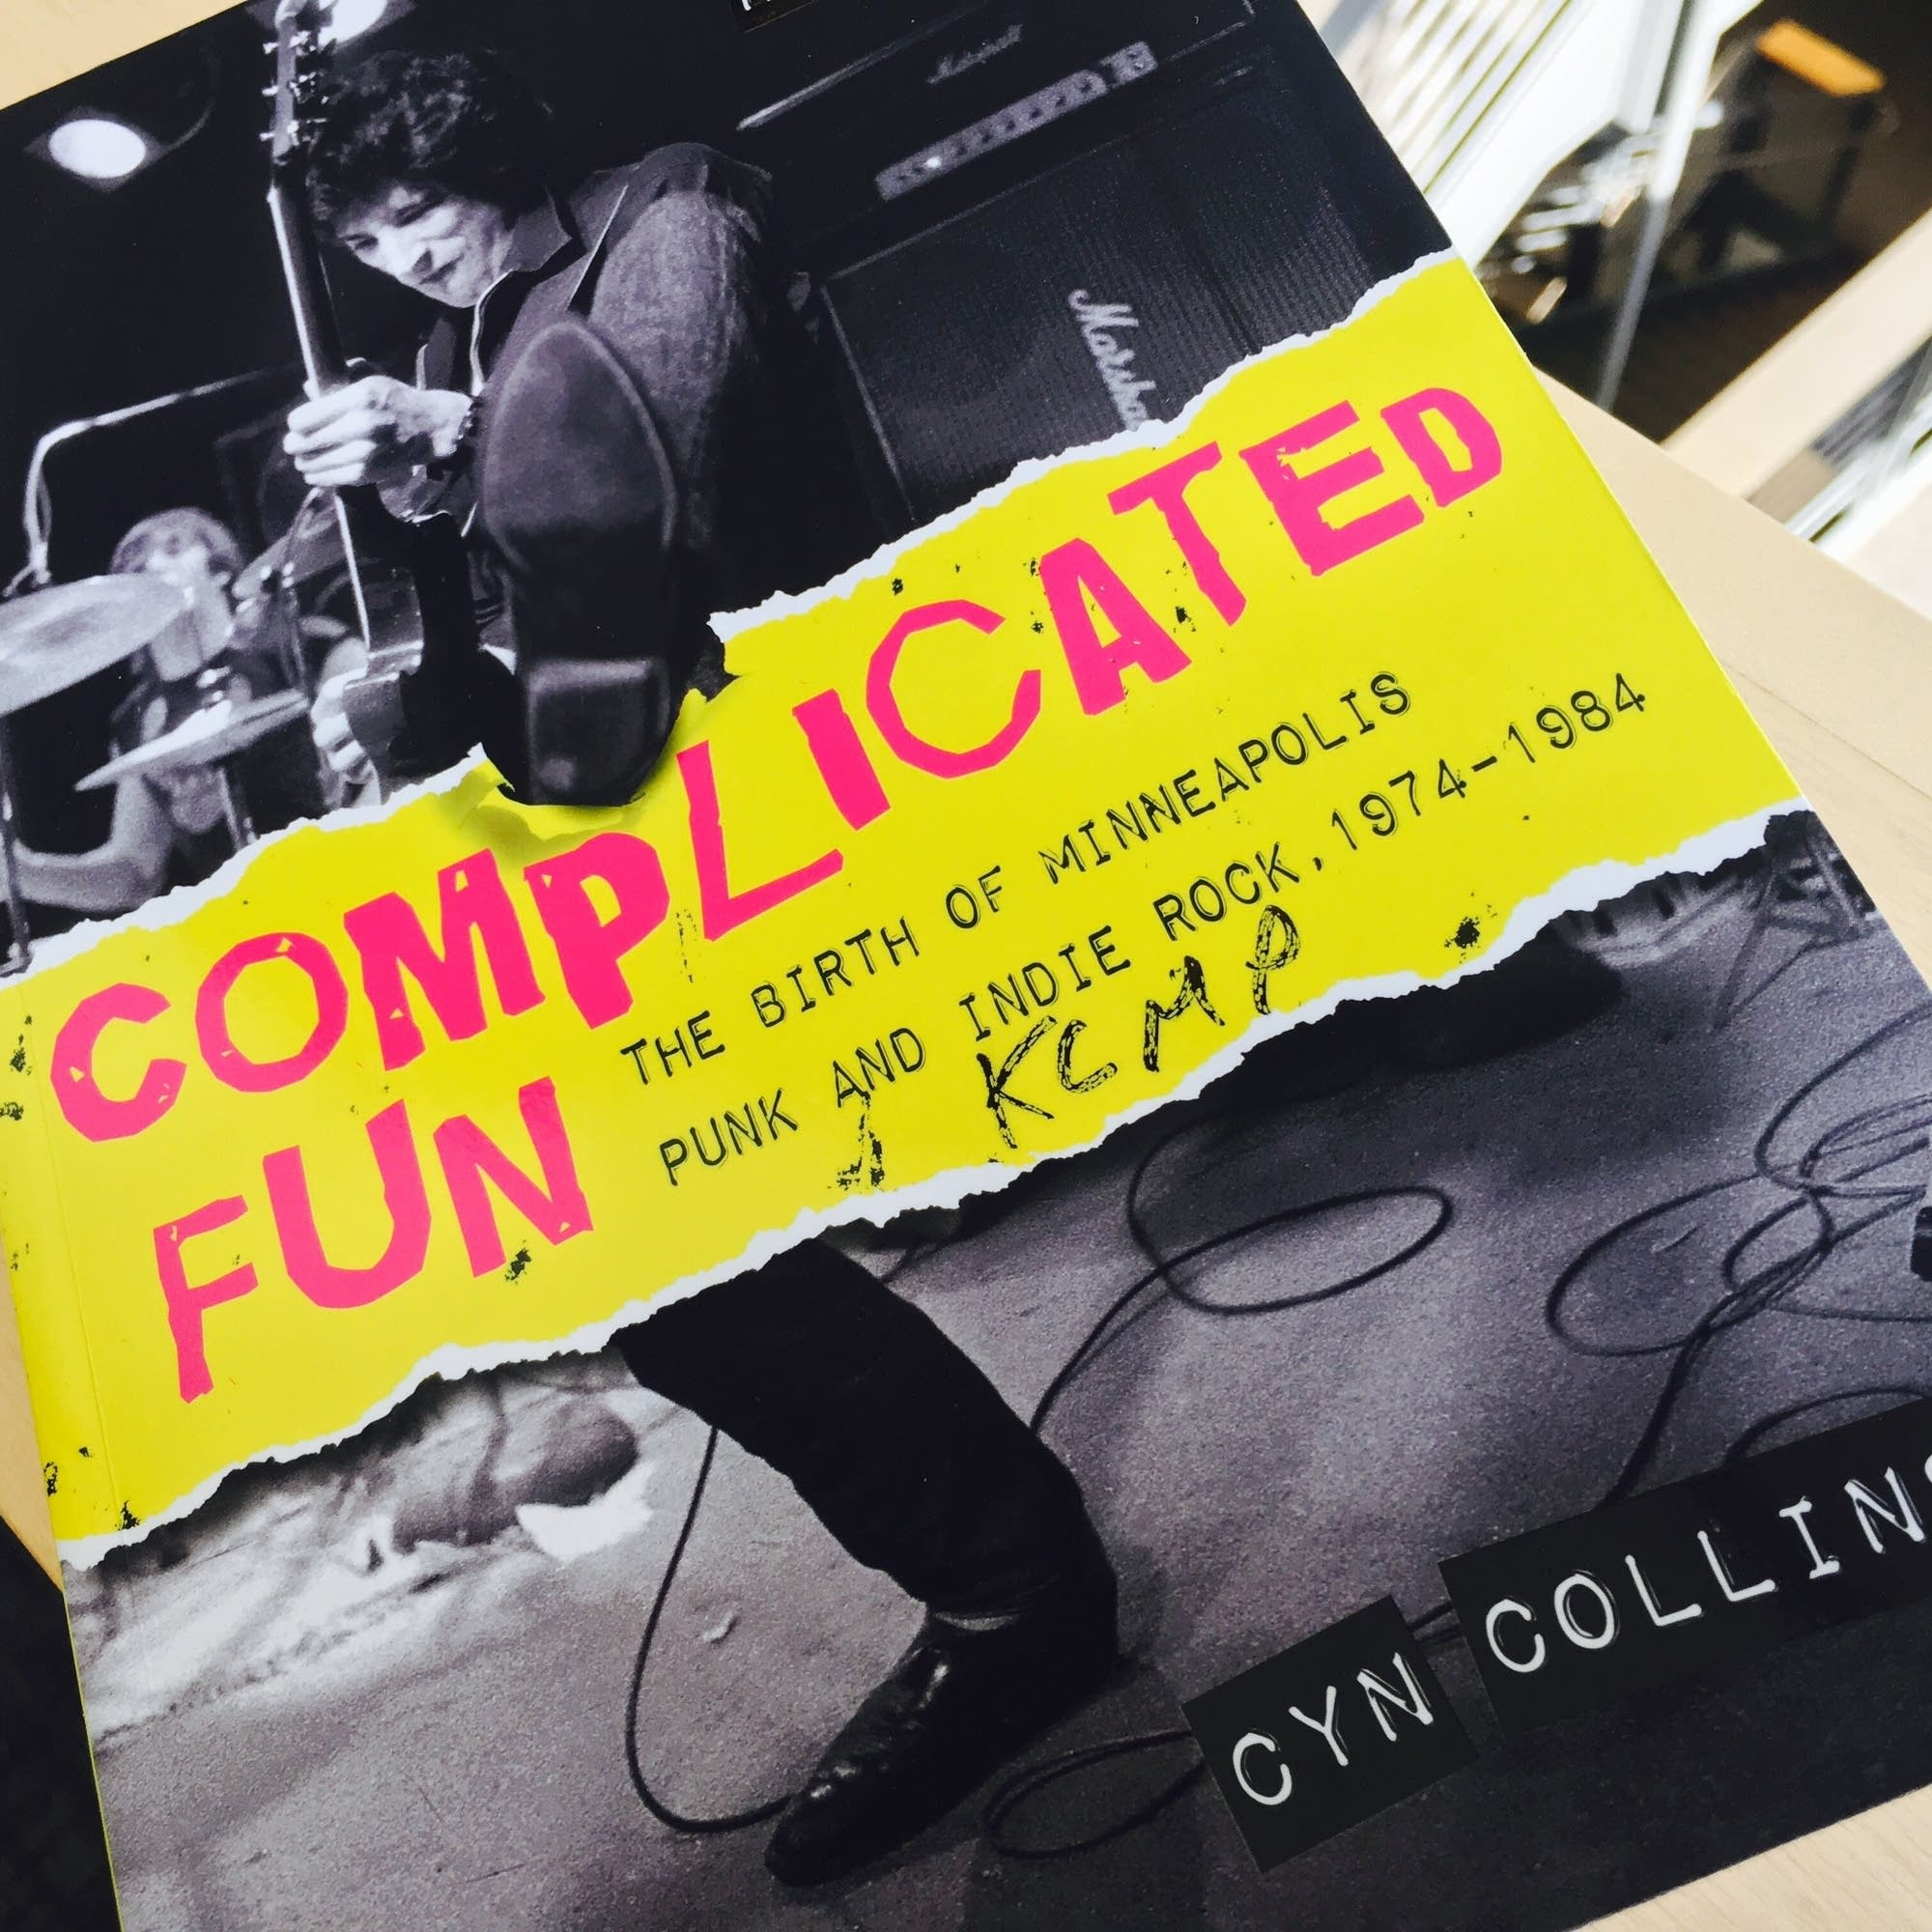 'Complicated Fun' by Cyn Collins